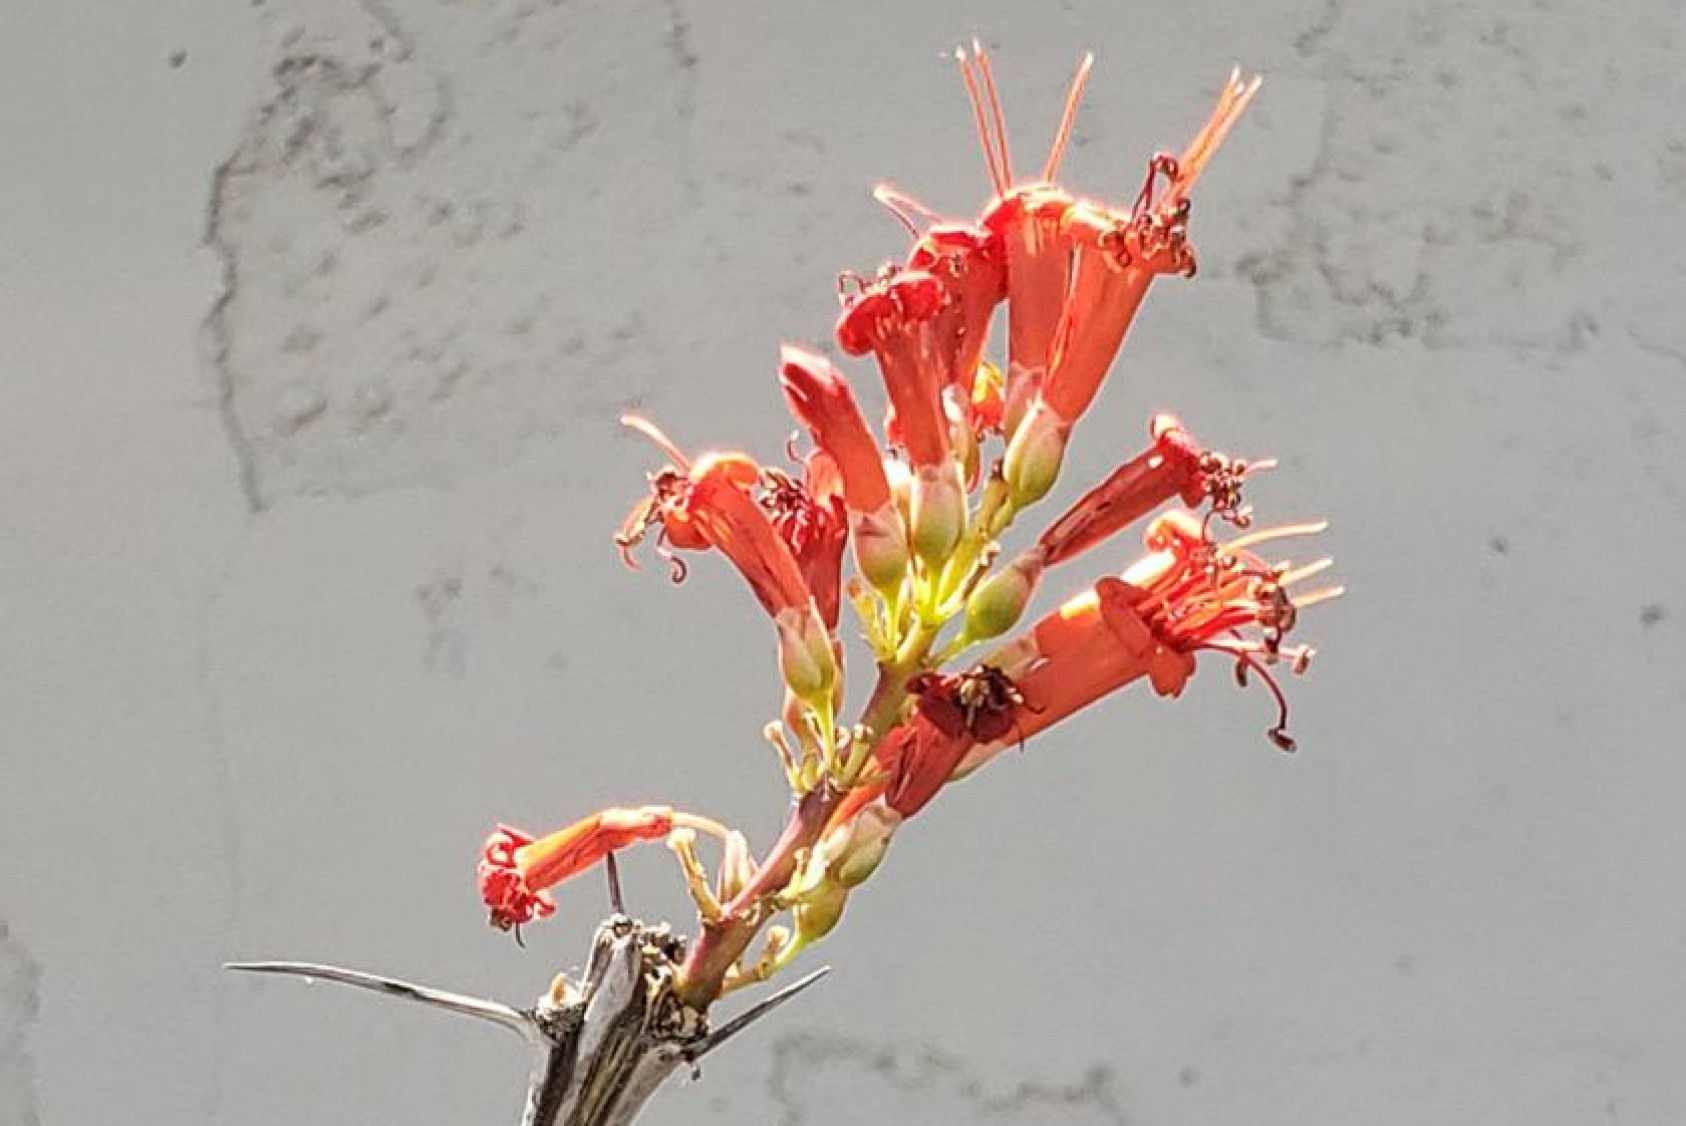 """Fouquieria splendens, or ocotillo: """"The long spiny stems are used for everything from fencing to medicines. The bright crimson flowers at the tip of the stems are also used for medicinal purposes and teas. When the sun hits it just right, the entire plant looks a cluster of lit candles,"""" Rodo says."""